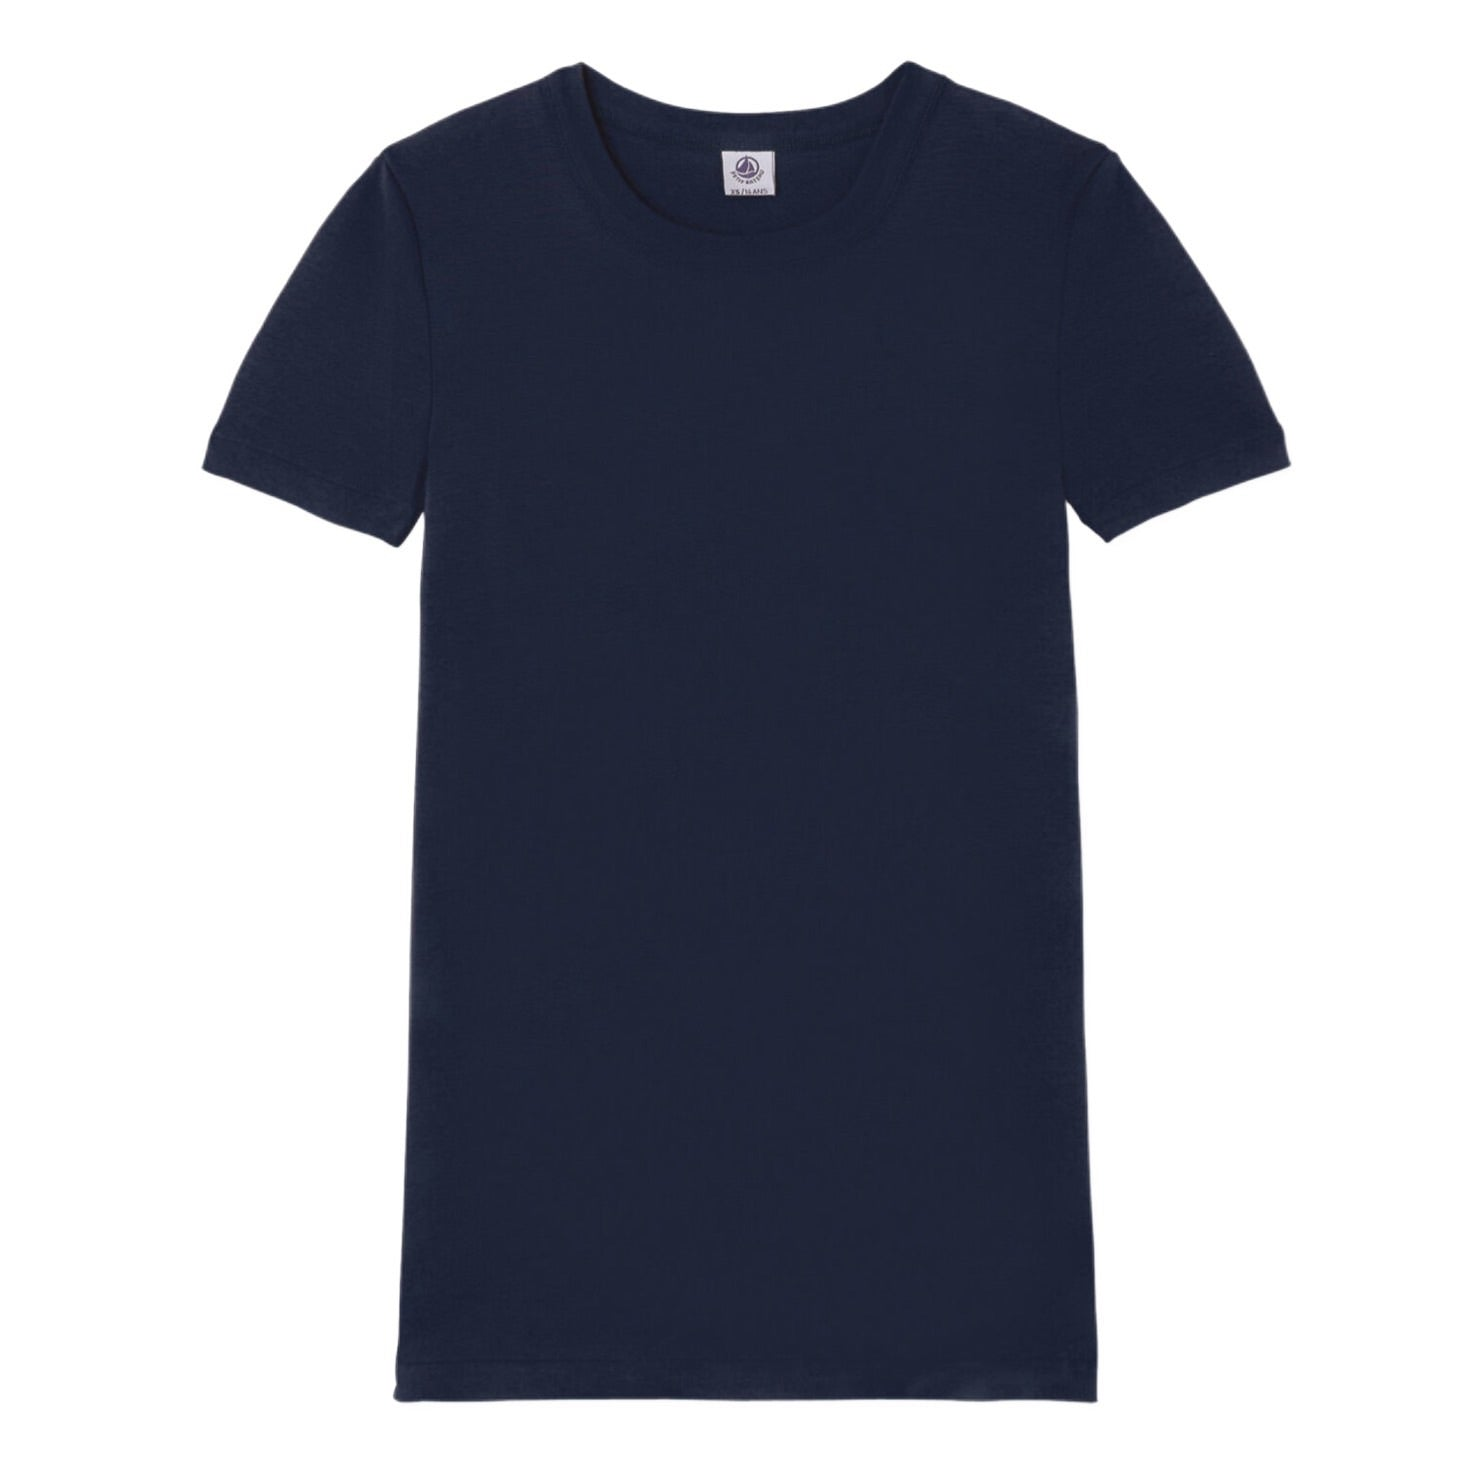 Short Sleeve Crewneck Tee in Navy